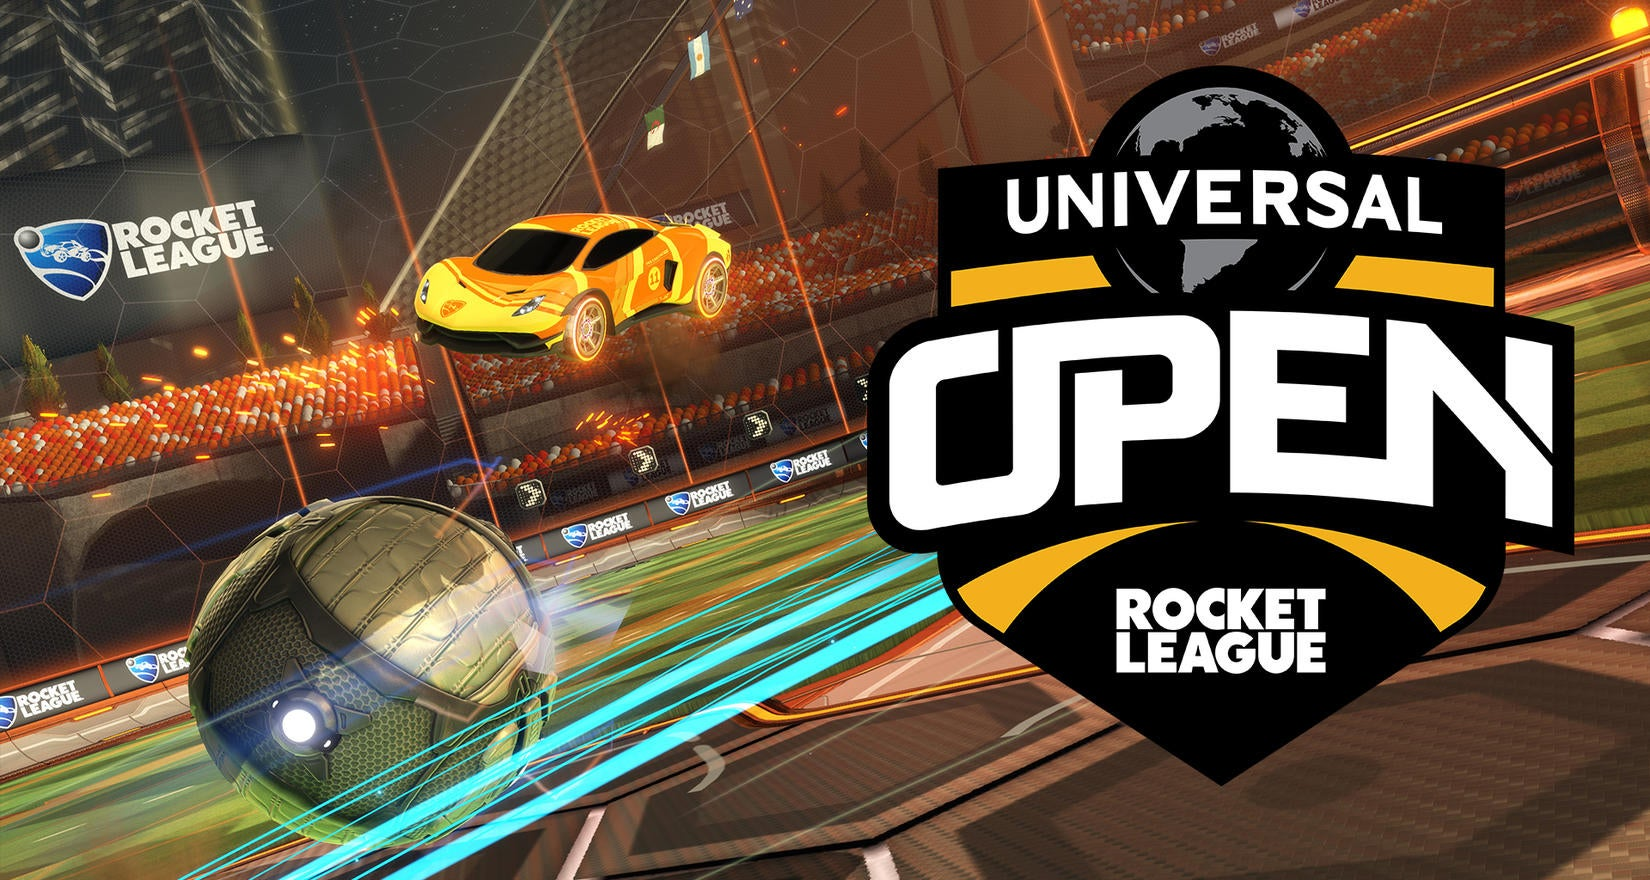 Universal Open Rocket League Grand Finals This Weekend Image